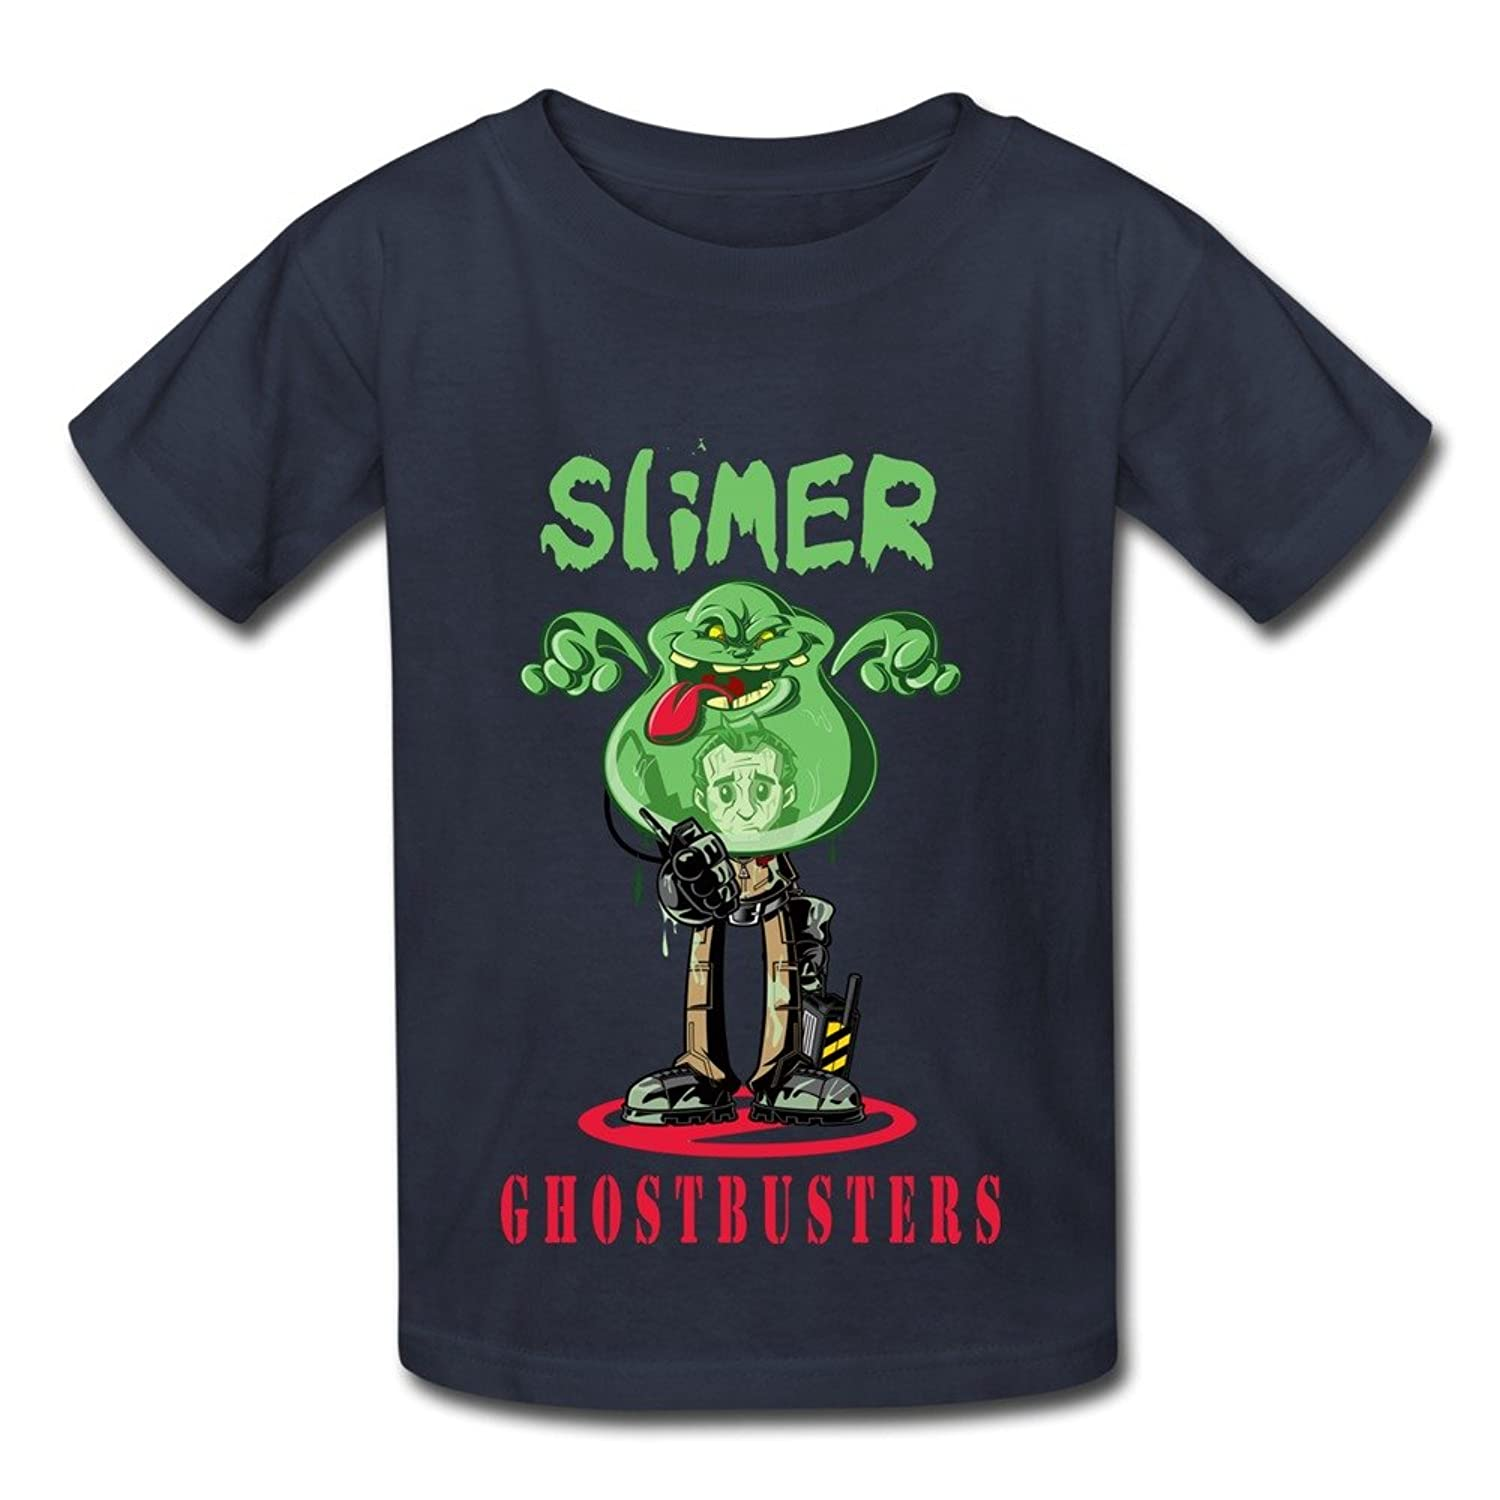 Boy's Ghostbusters Movie Slimer Poster Screw Neck 100% Cotton Tee Navy